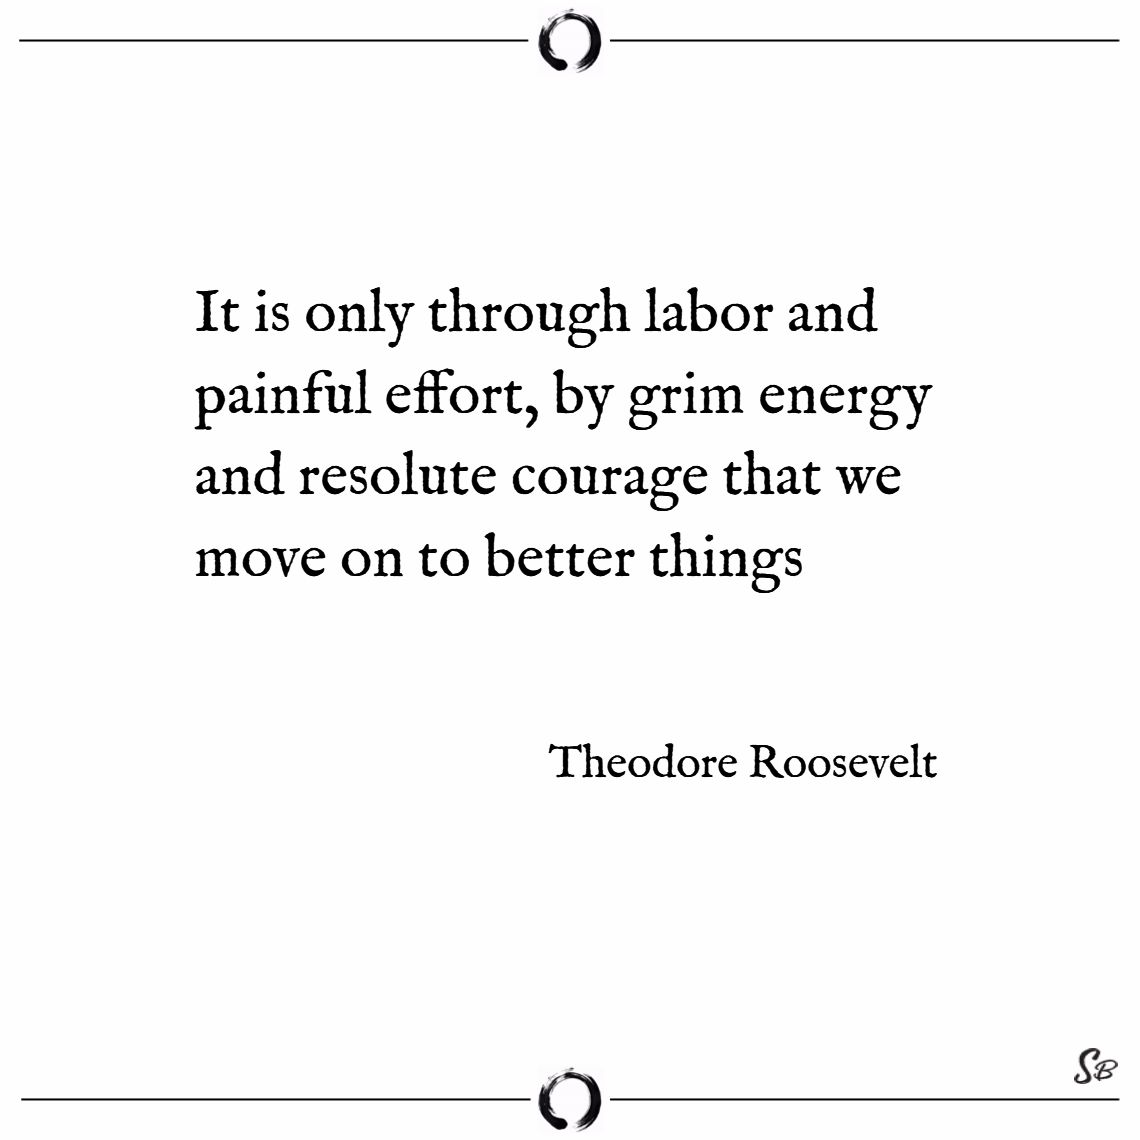 It is only through labor and painful effort, by gr